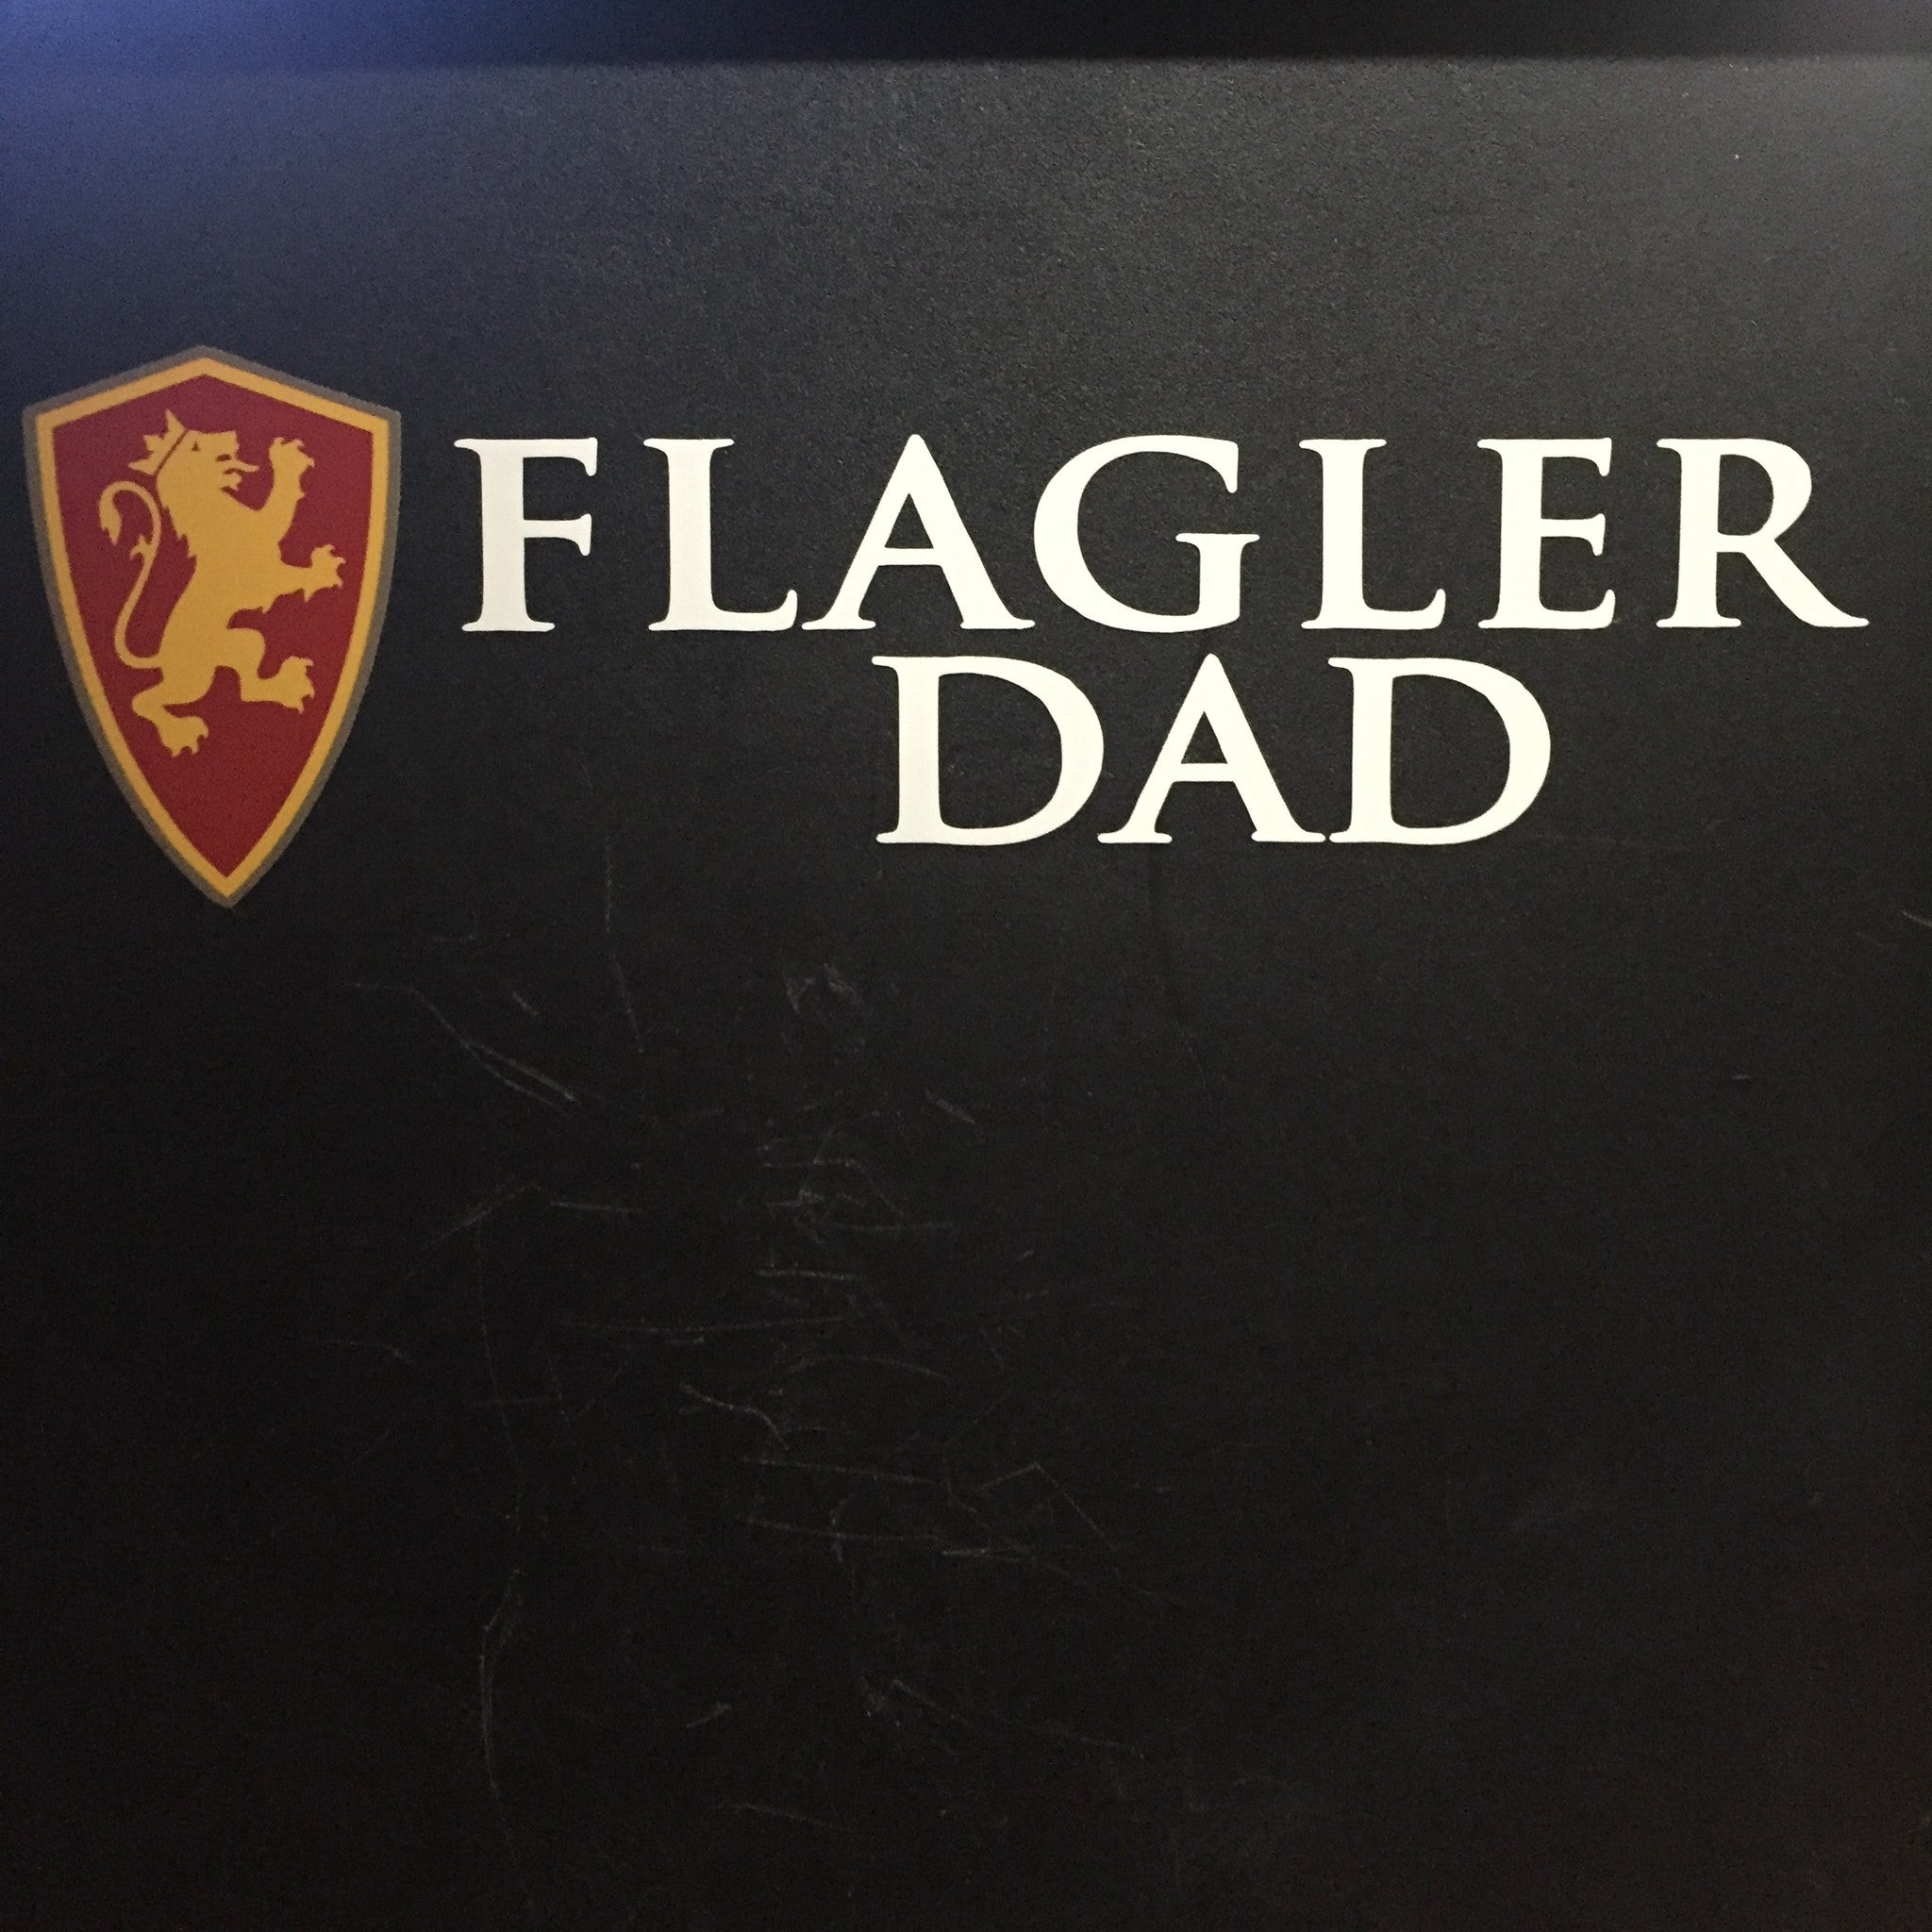 full color shield and Flagler Dad in white decal